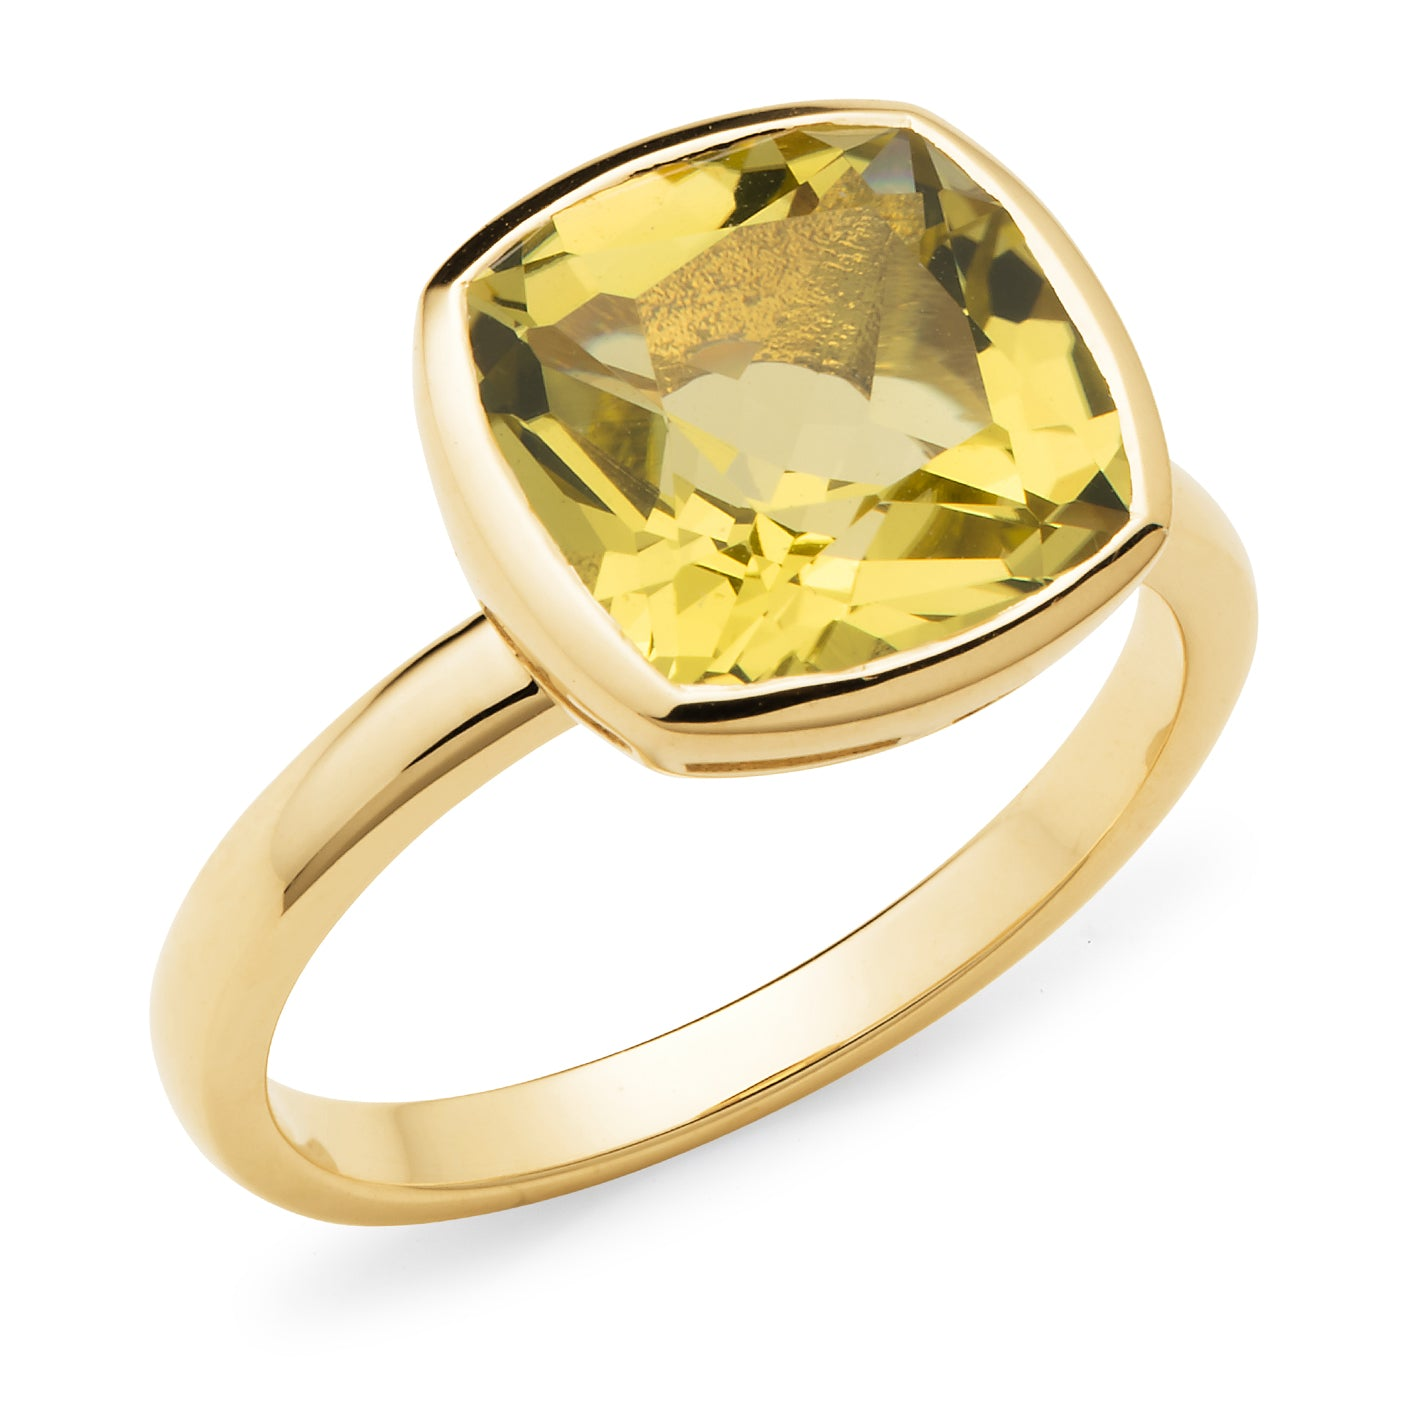 Lemon Quartz Bezel Set Dress Ring